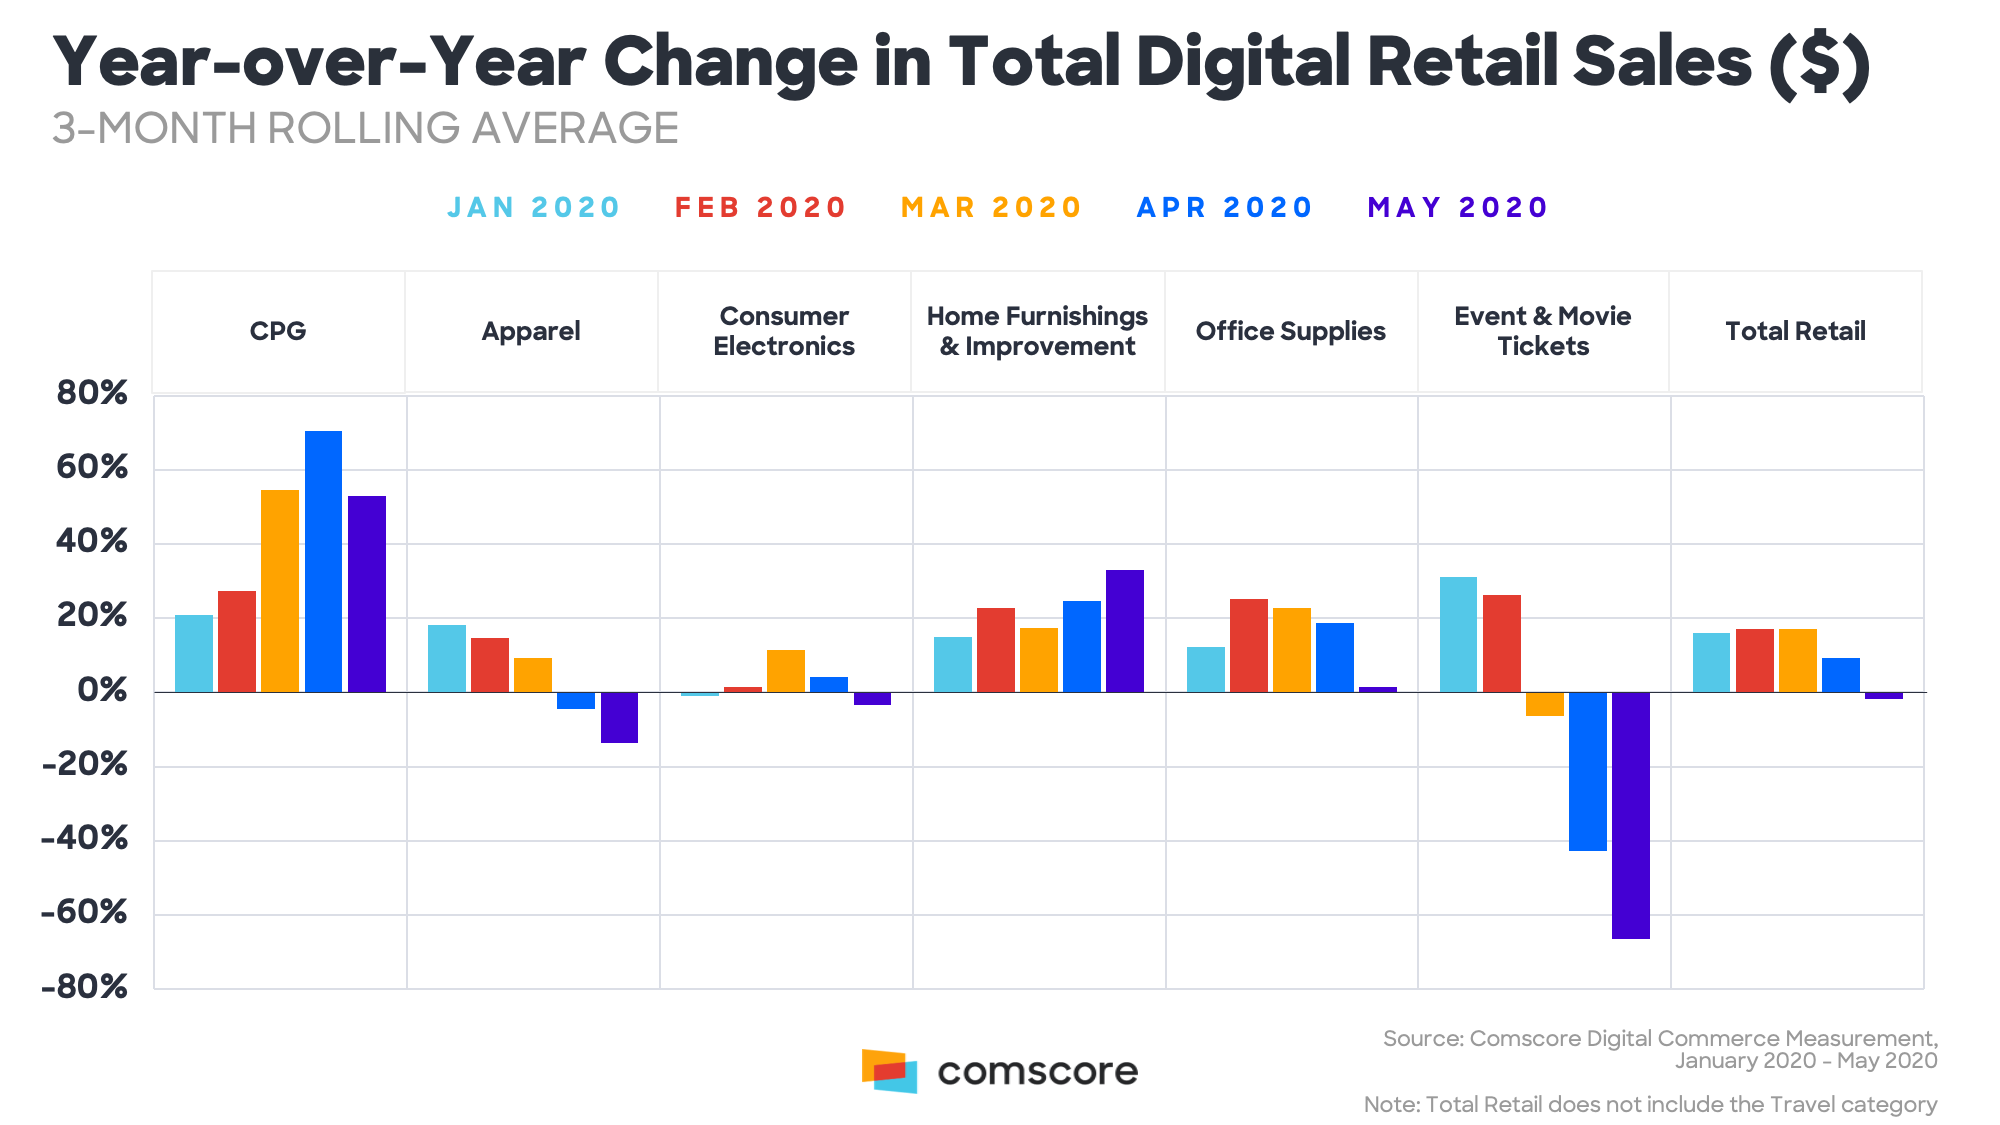 Year-over-Year Change in Total Digital Retail Sales